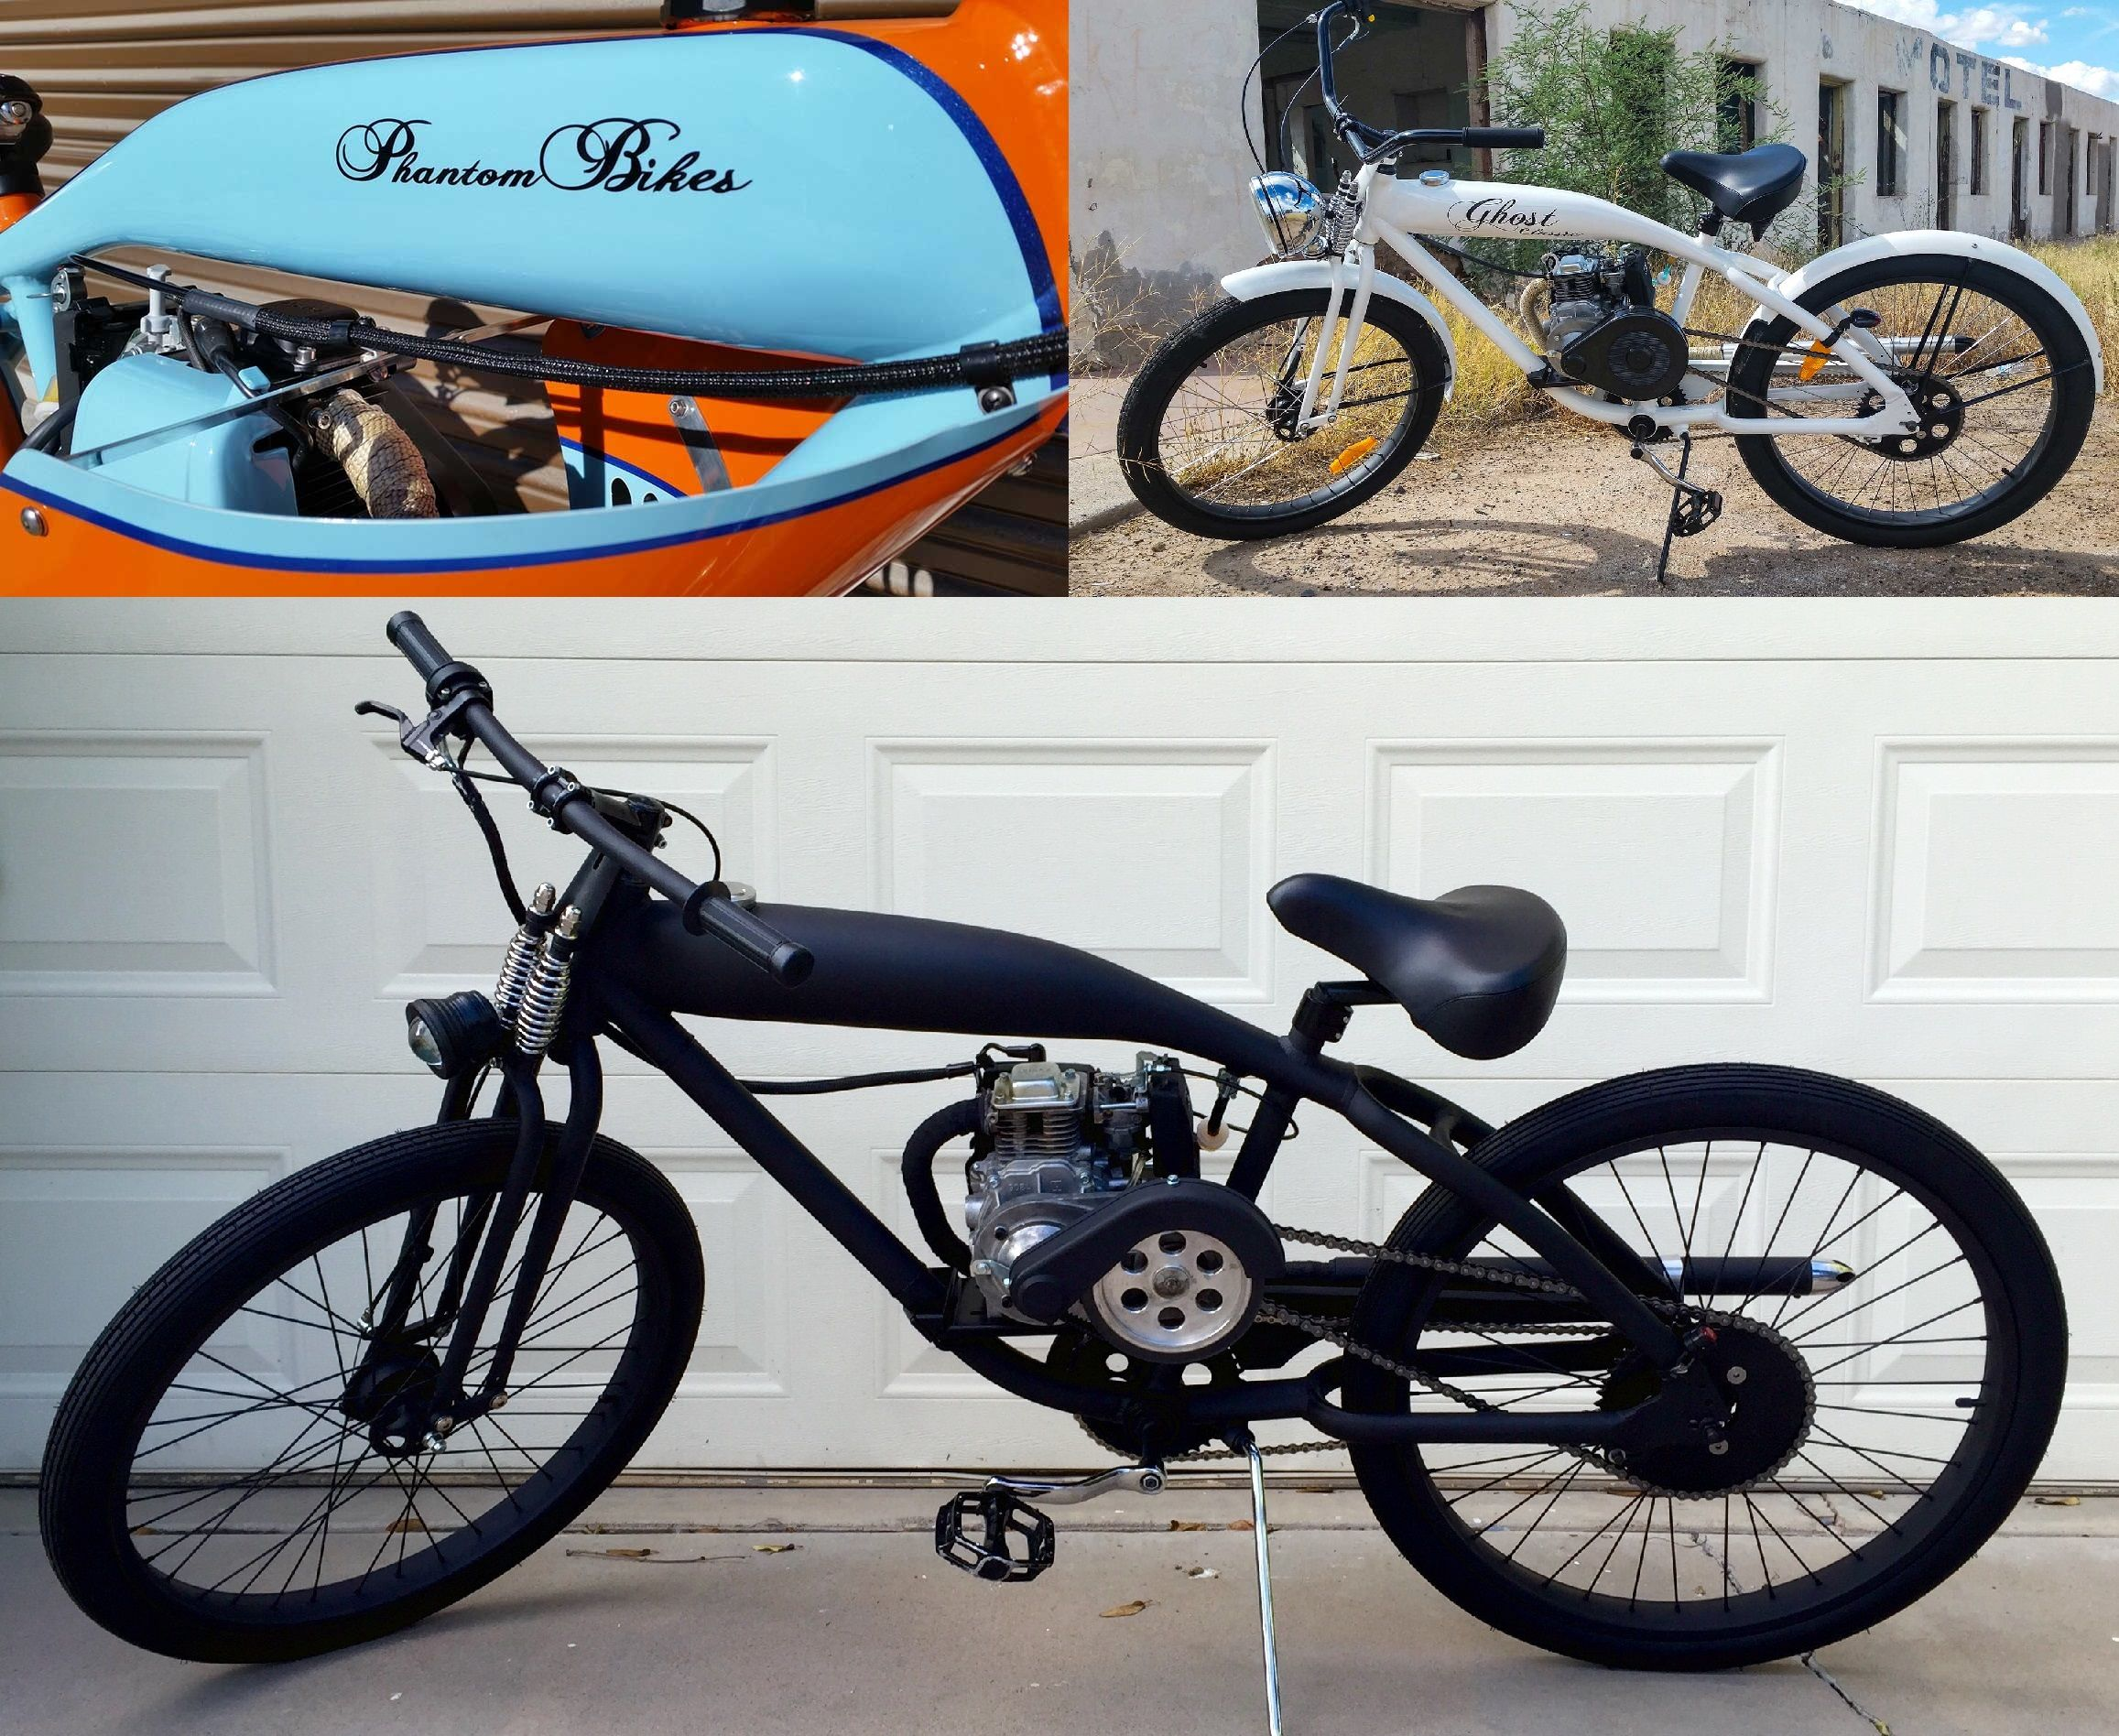 PHANTOM BIKES - 49 cc motorized bicycles. Street legal with no license required. They